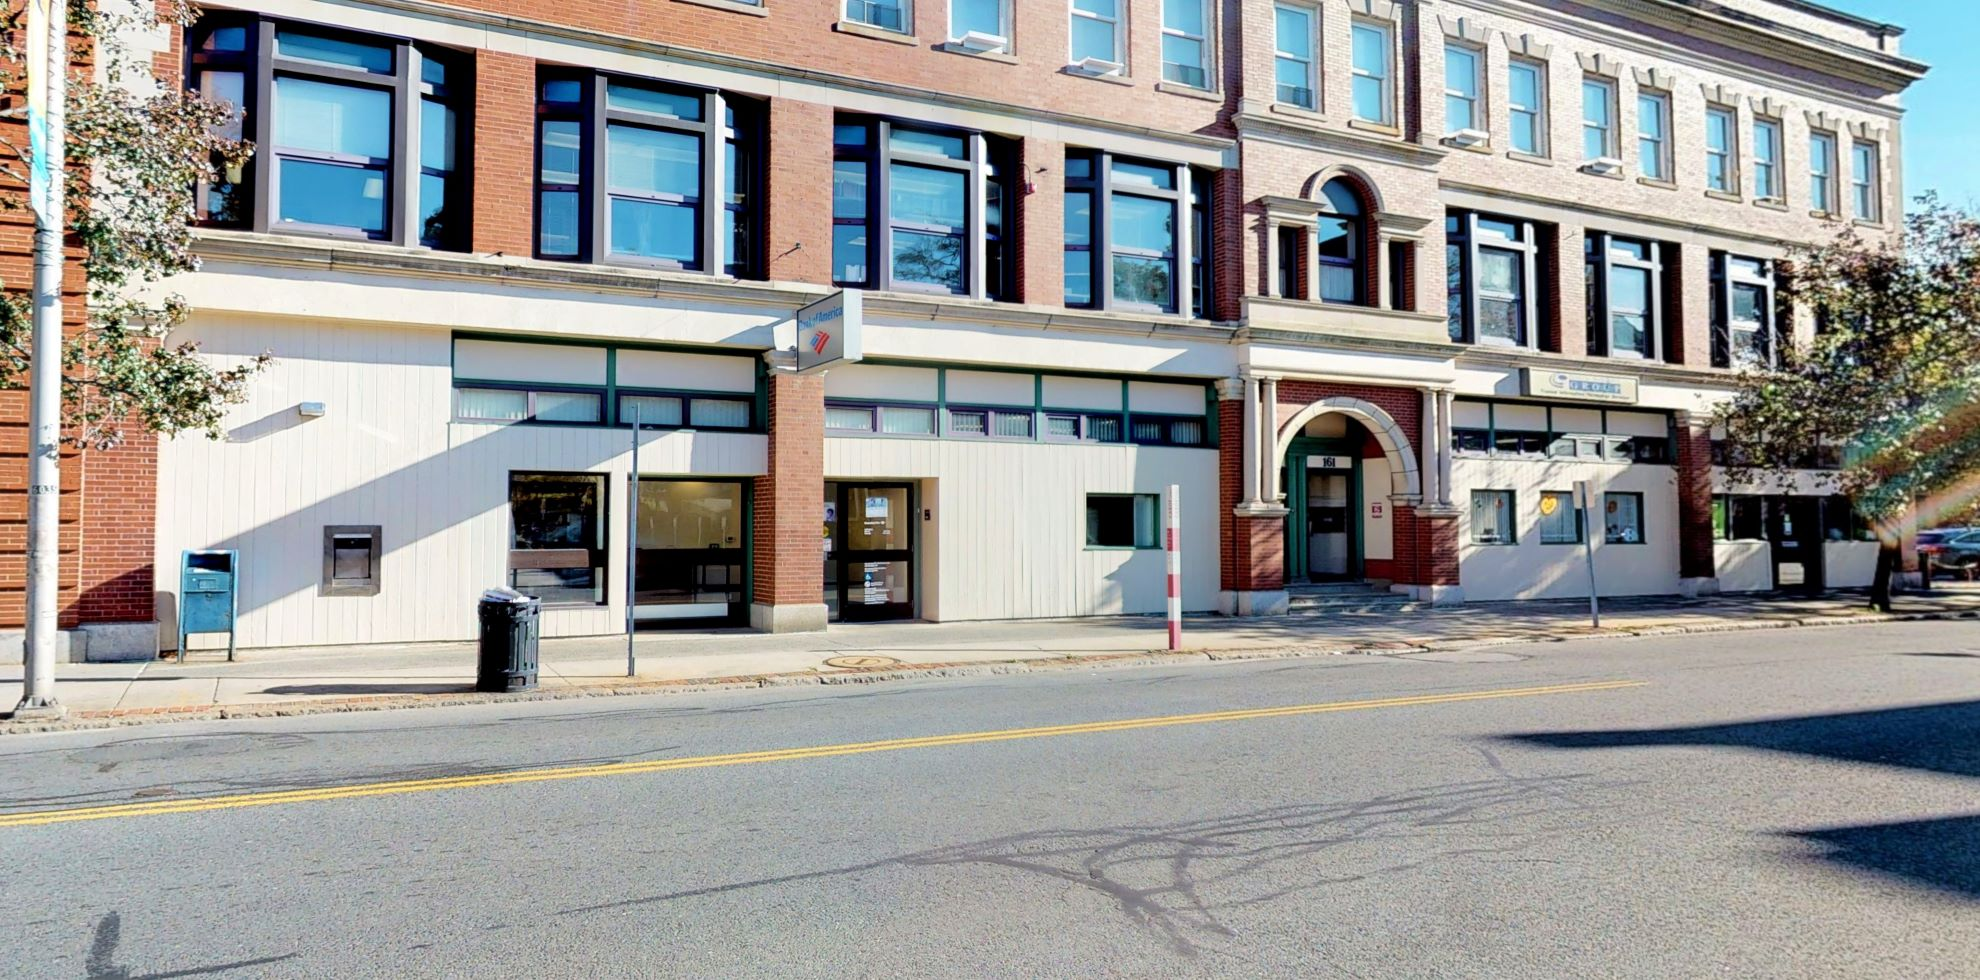 Bank of America financial center with walk-up ATM | 165 Cabot St, Beverly, MA 01915